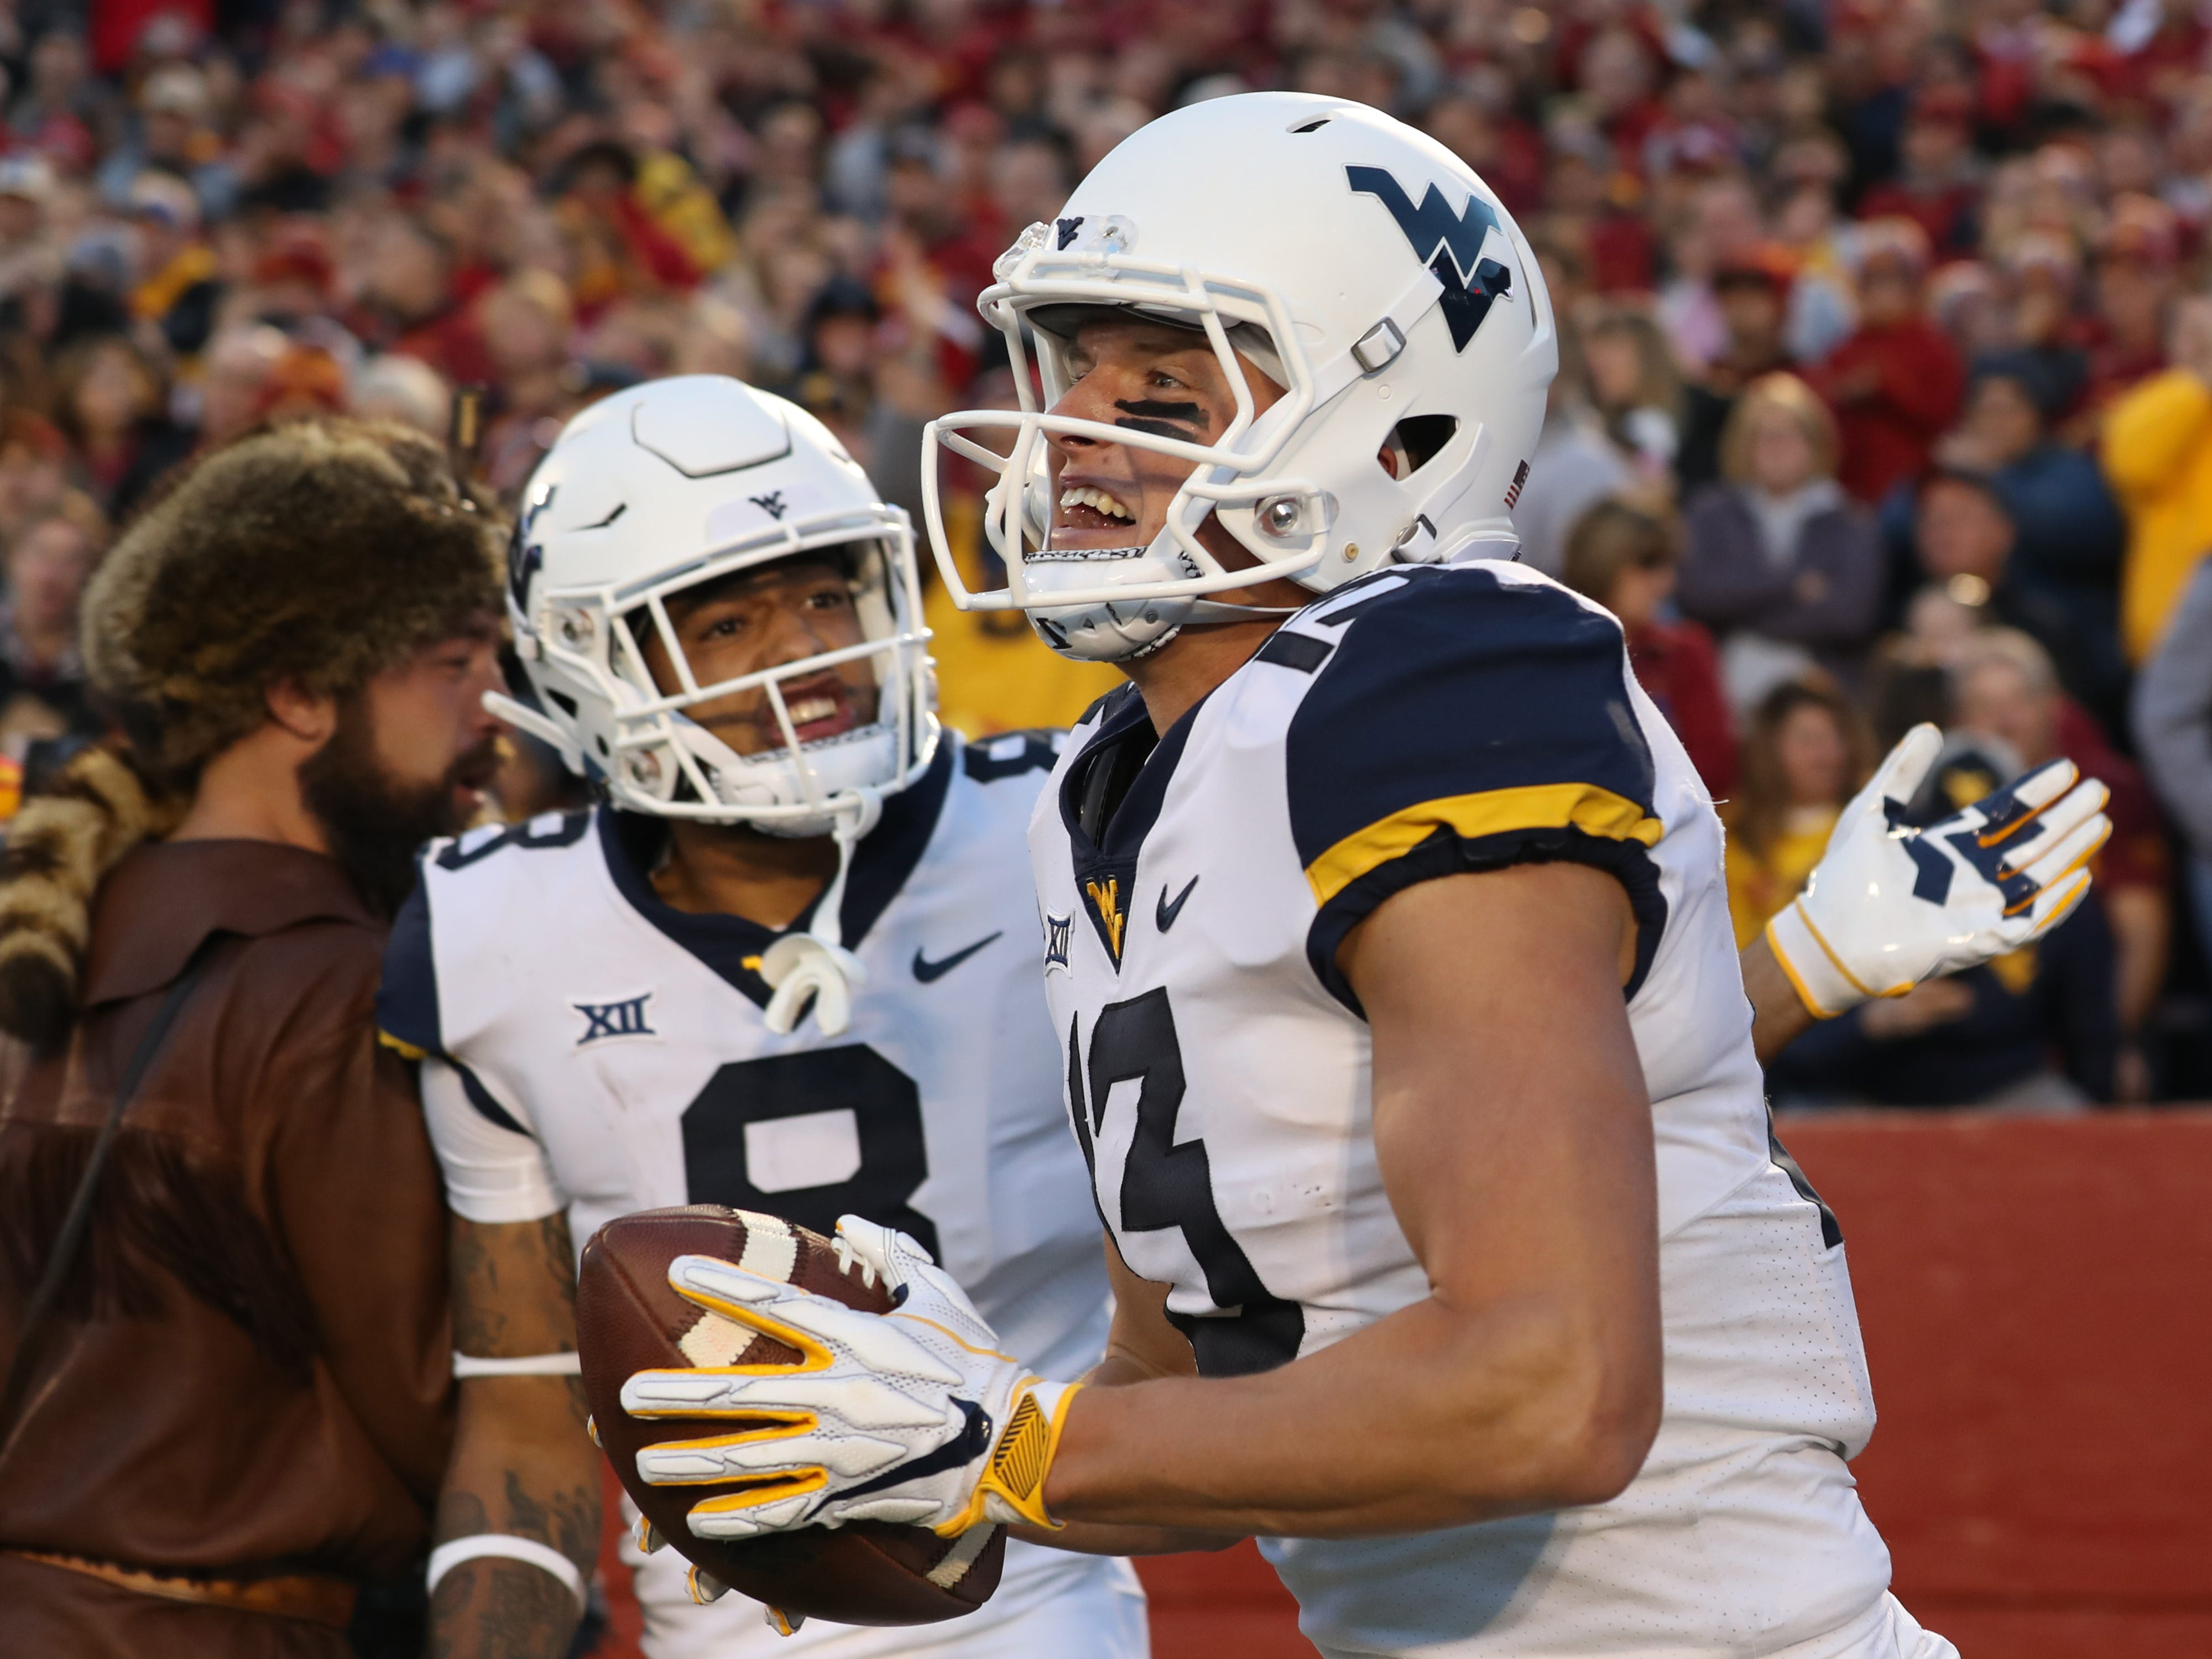 West Virginia Mountaineers wide receiver David Sills V (13) celebrates with wide receiver Marcus Simms (8) after scoring a touchdown against the Iowa State Cyclones at Jack Trice Stadium.